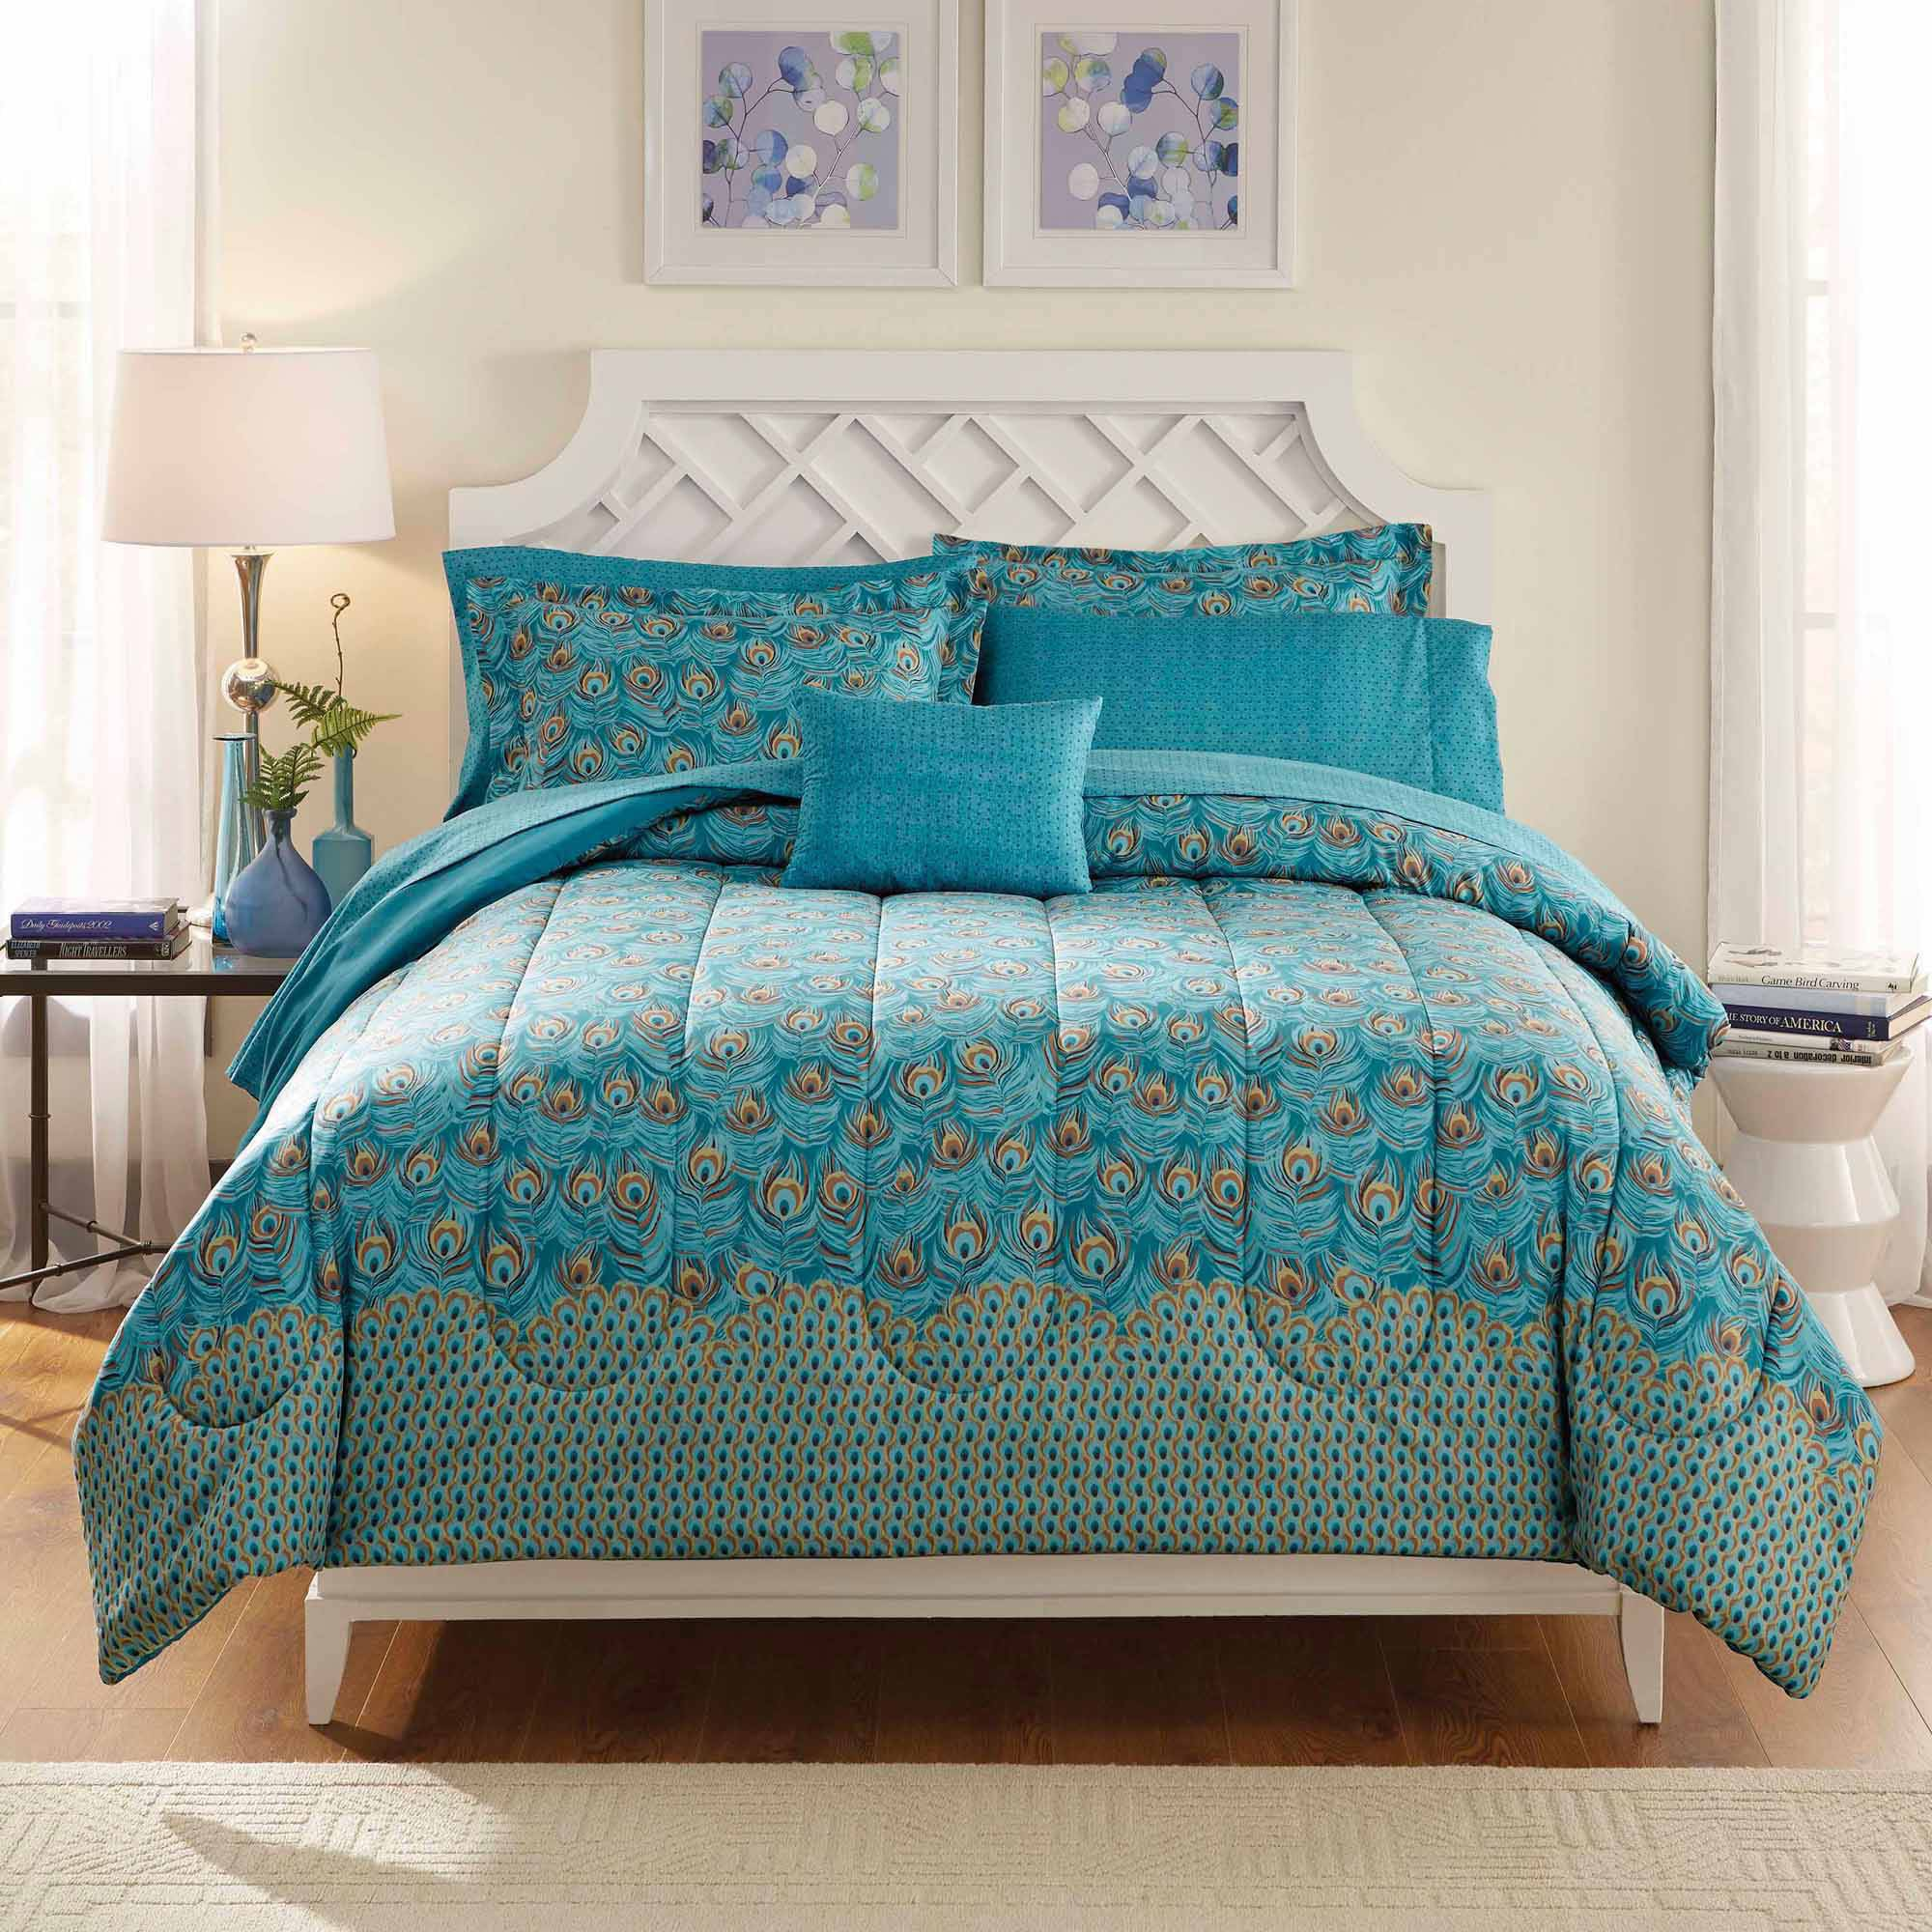 Peacock bedroom set - Mainstays Bed In A Bag Bedding Comforter Set Peacock Feather Walmart Com